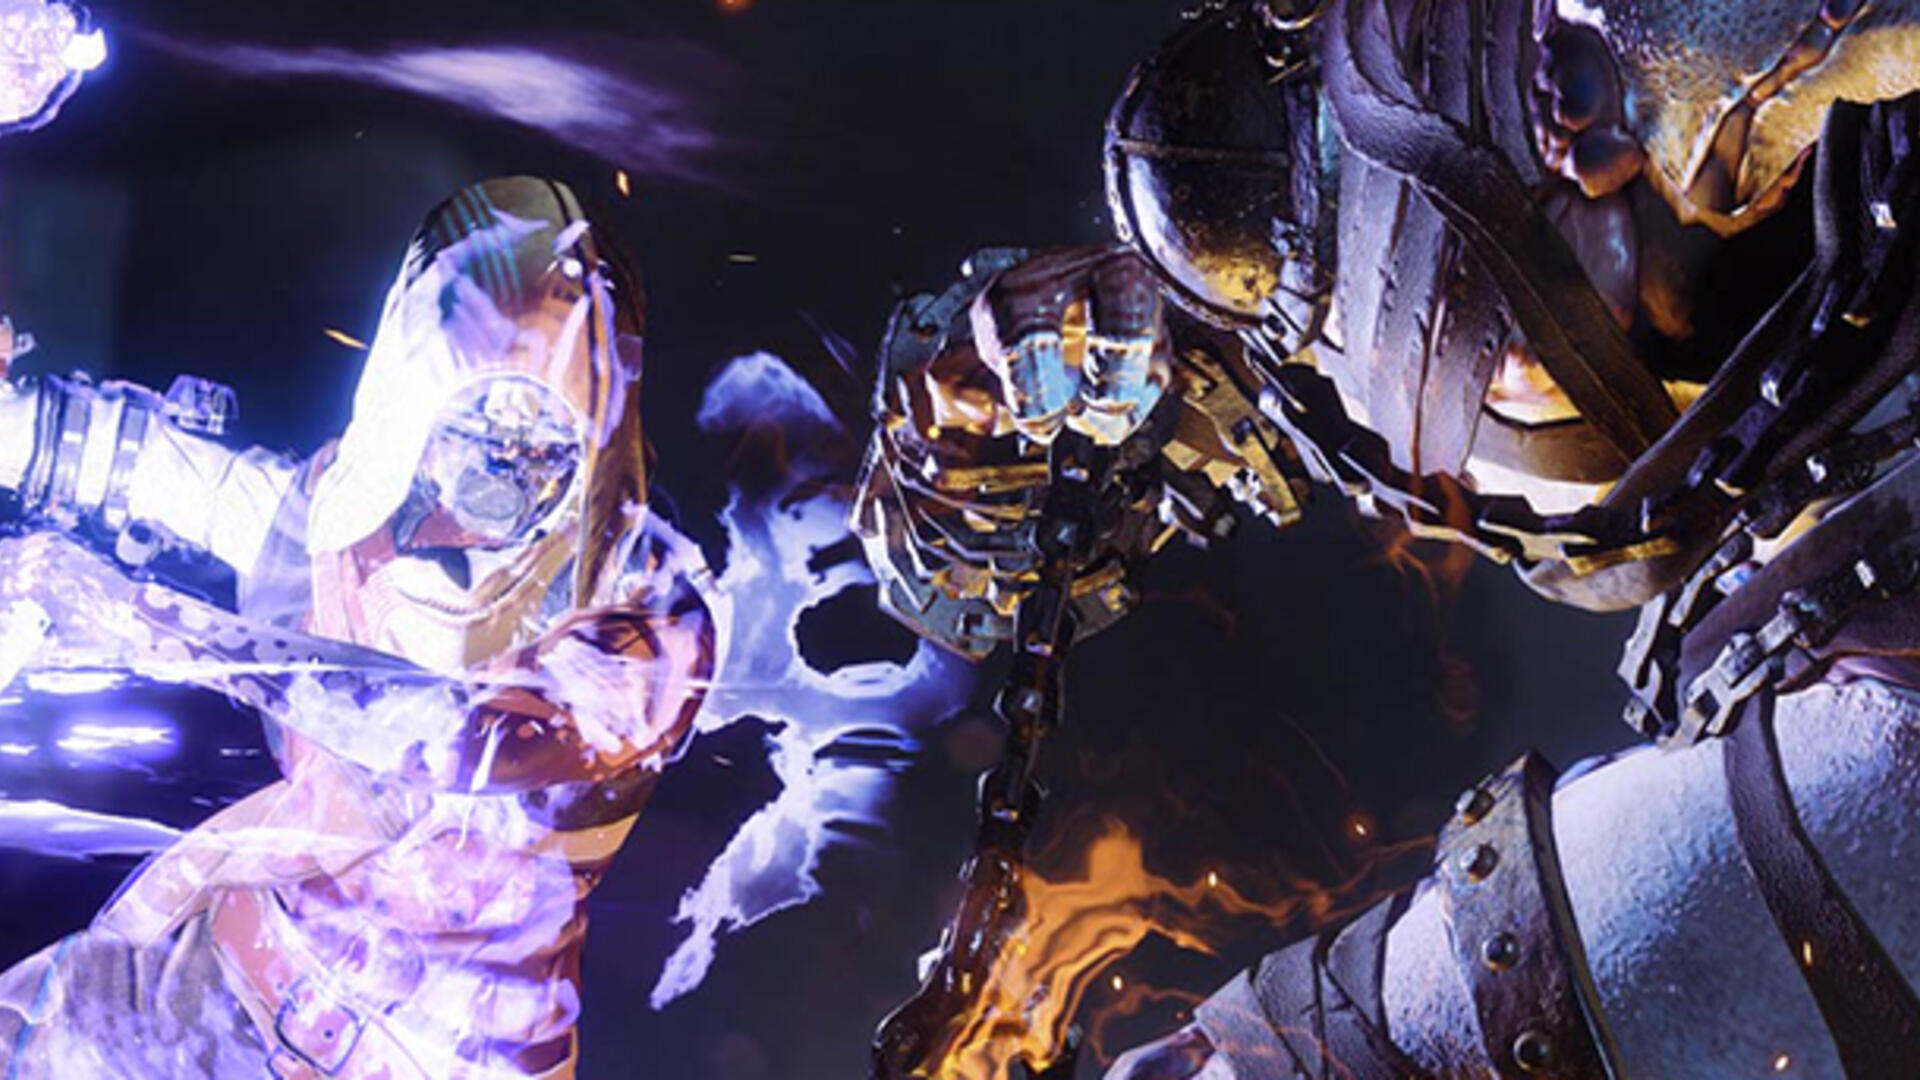 Destiny 2 Players Glitch Their Way Into The Last Wish Raid [Update: New Glitch Lets You Acquire a Full Raid Gear Set]